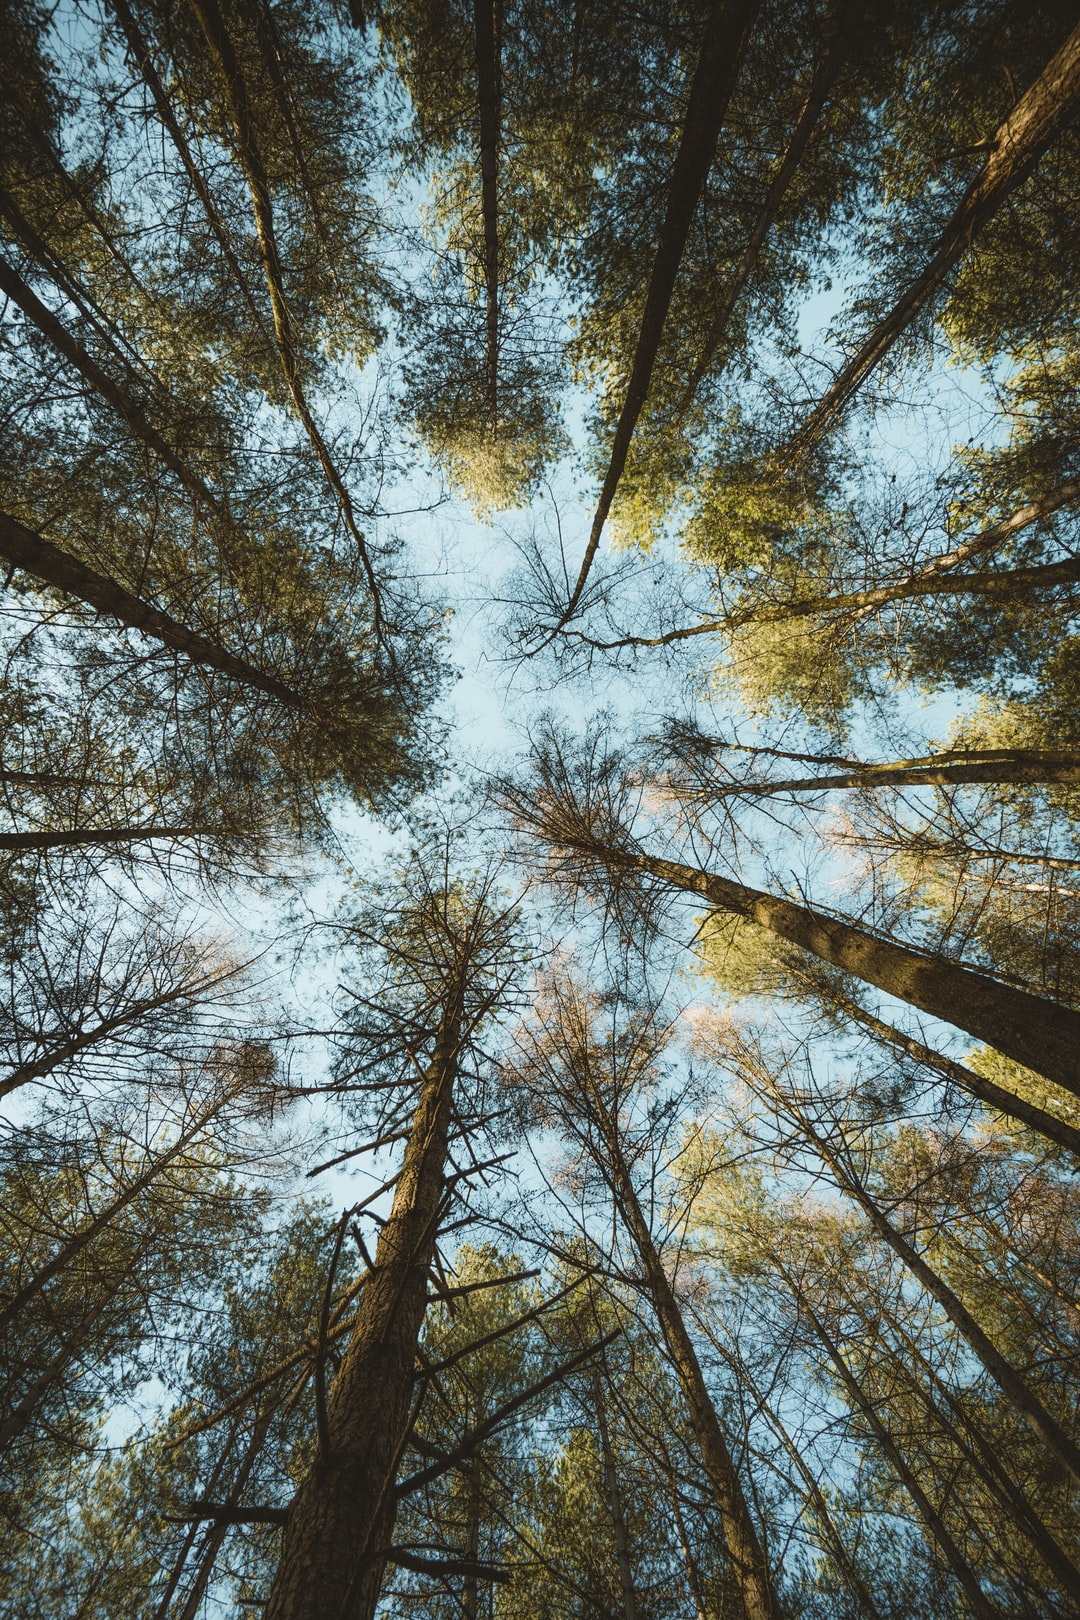 Wide angle view of tree canopy